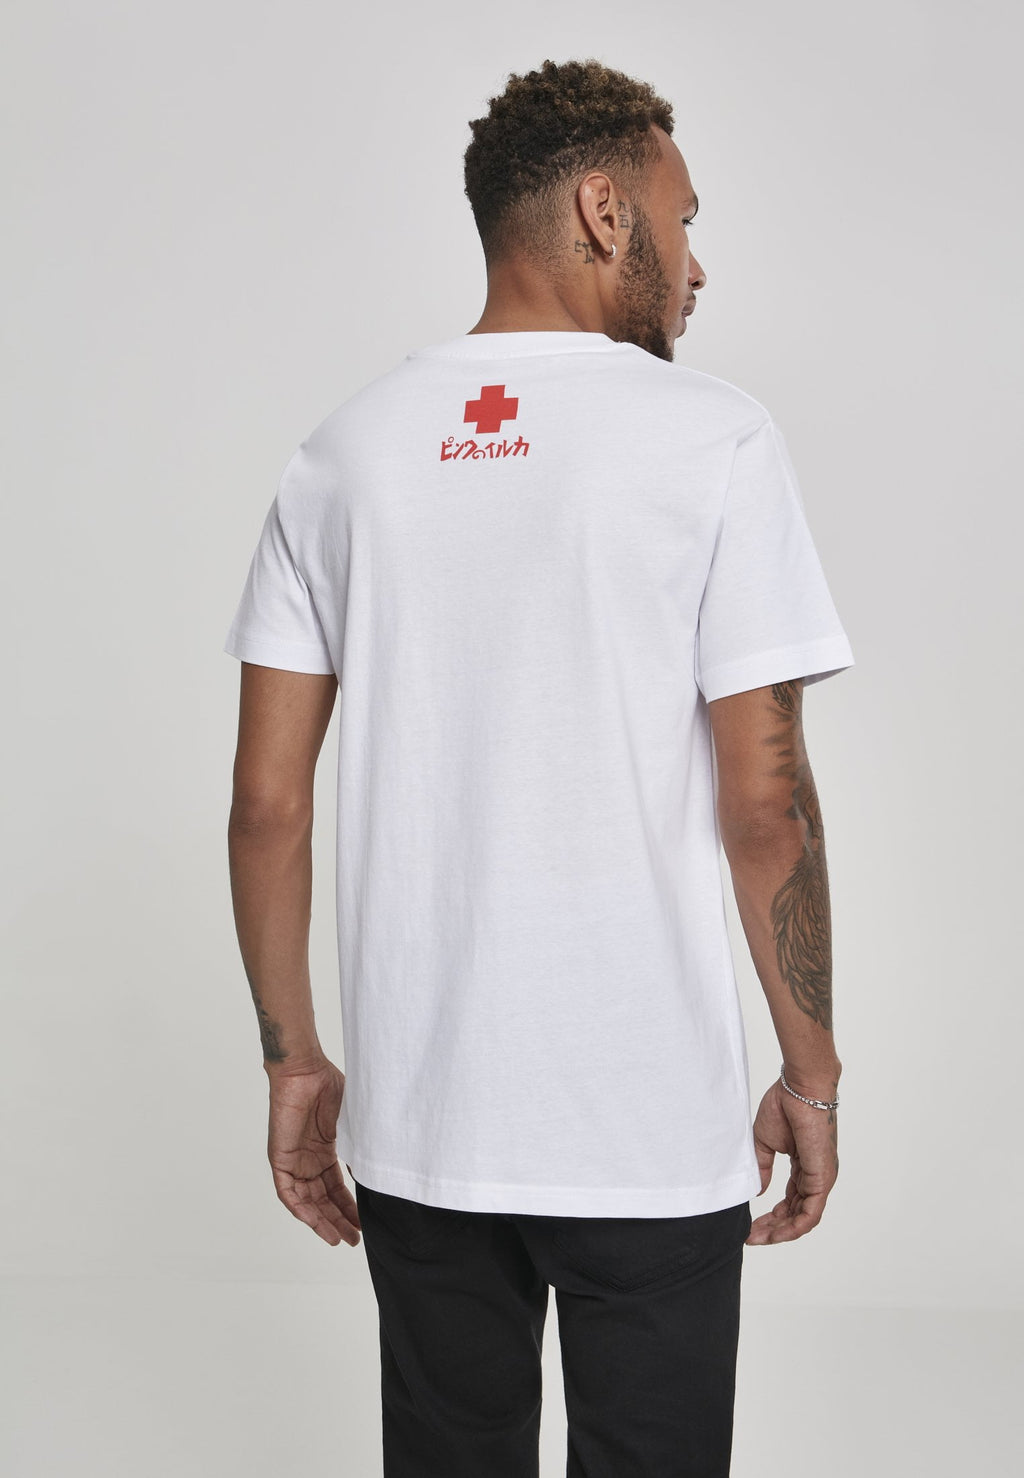 Summer Waves Tee - White